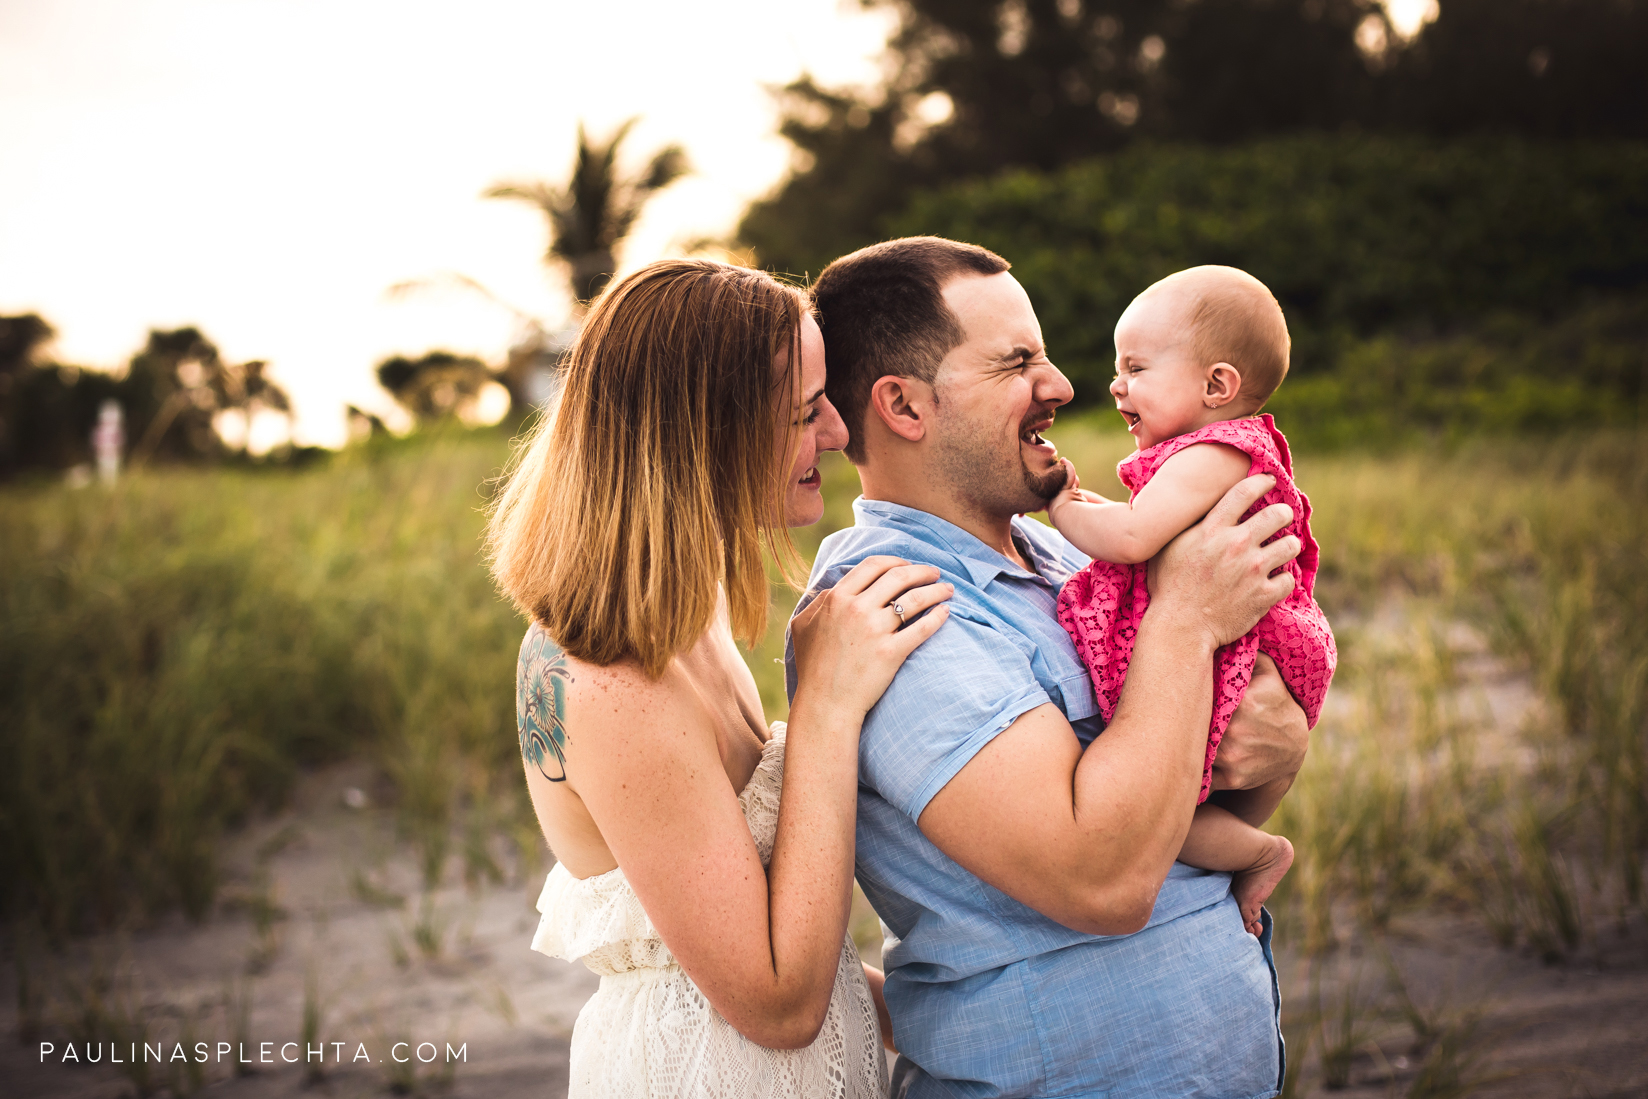 family-photographer-photo-shoot-boca-raton-delray-beach-west-palm-ft-lauderdale-south-florida-baby-maternity-4.jpg